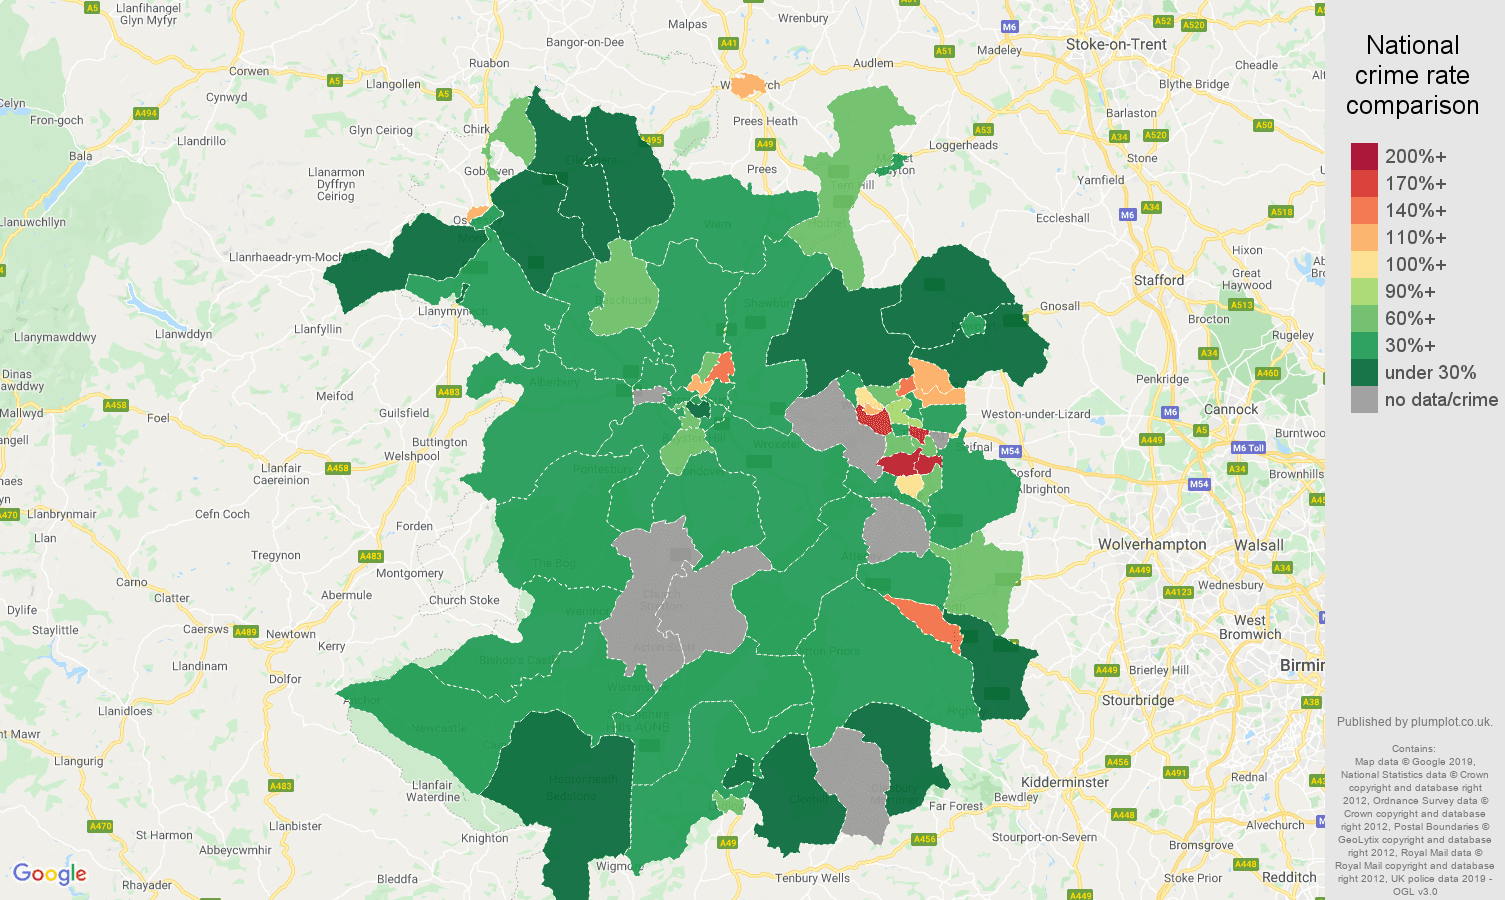 Shropshire other crime rate comparison map